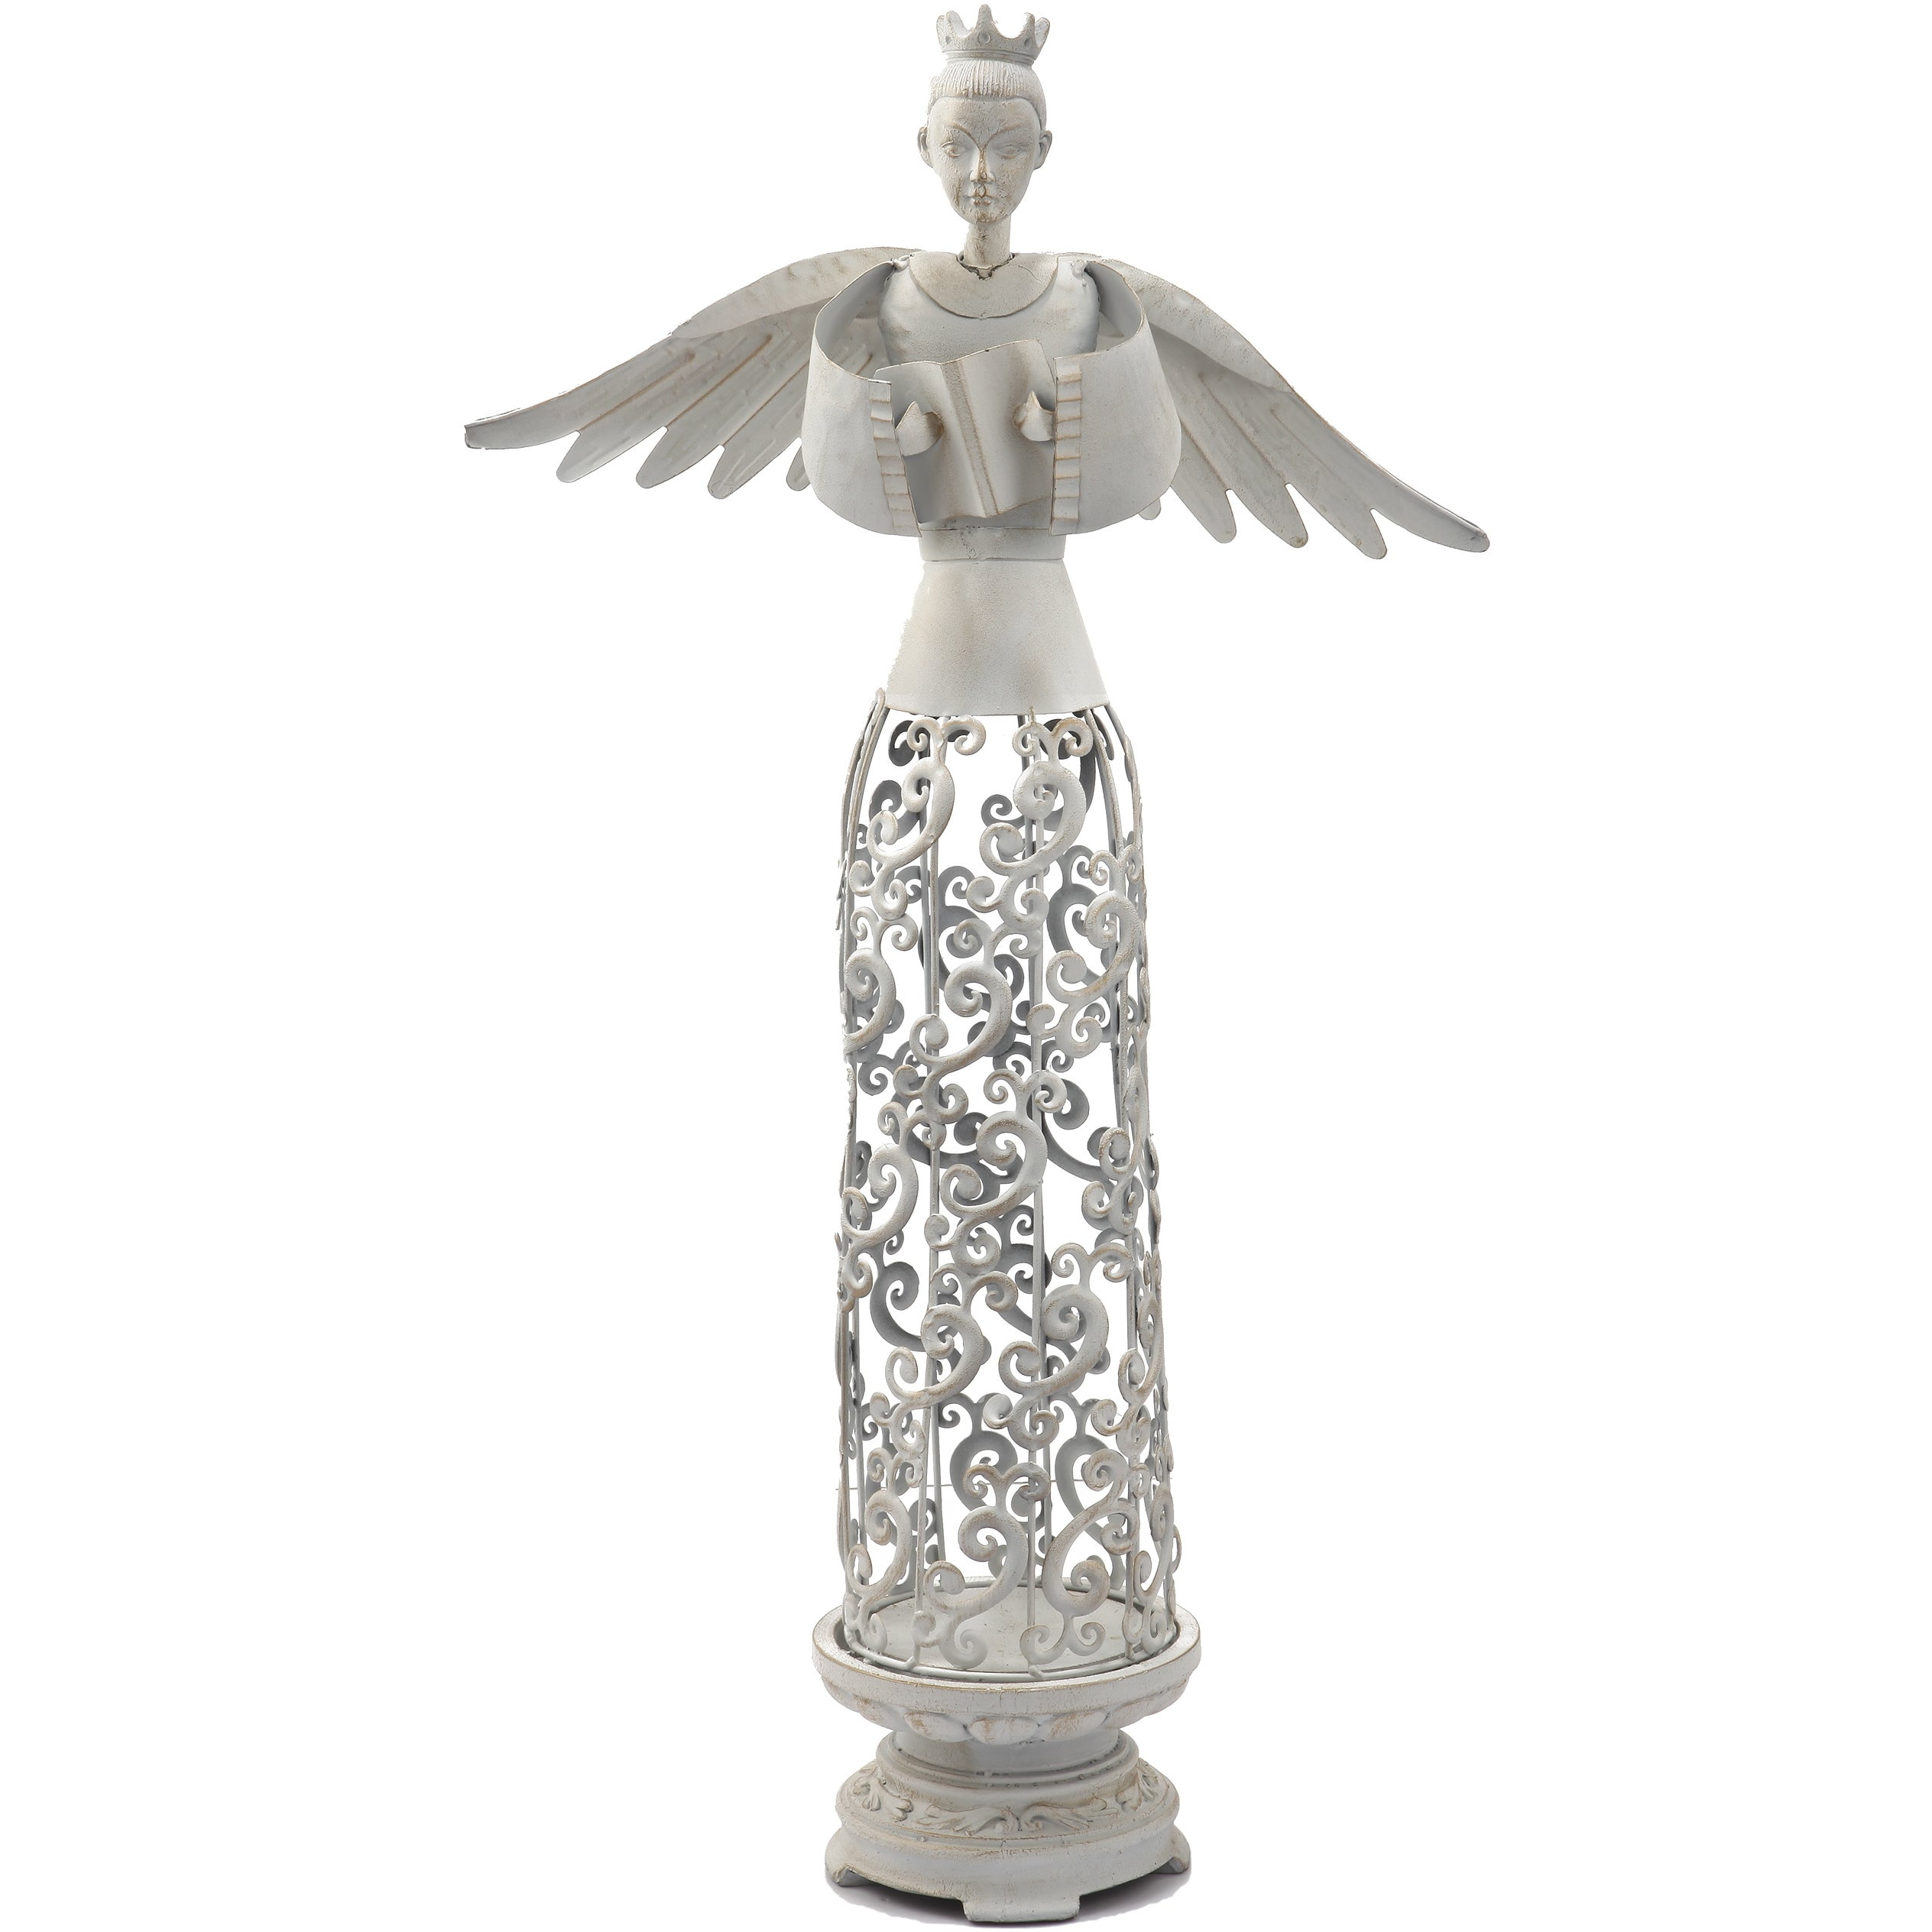 Angel 29-inch Candle Holder (Angel 6.3x6.3x29), Beige Off...